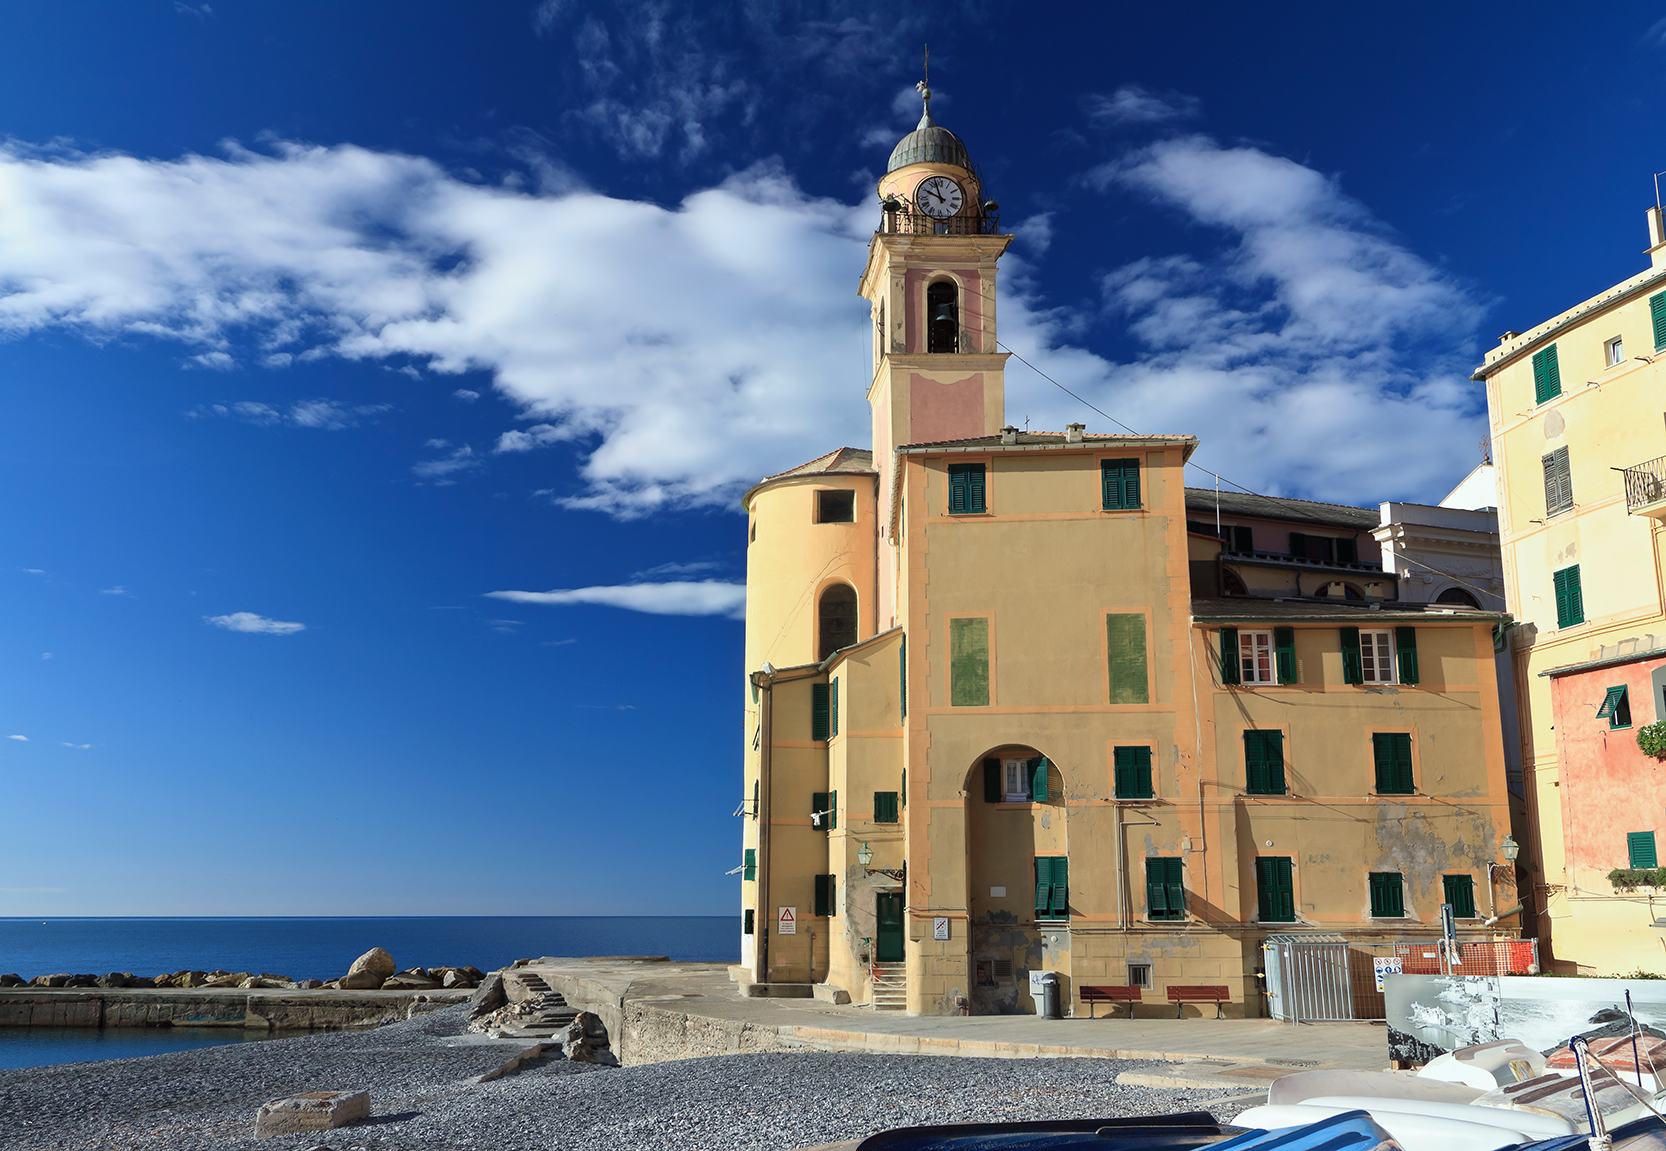 seaside and church in Camogli, Liguria, Italy